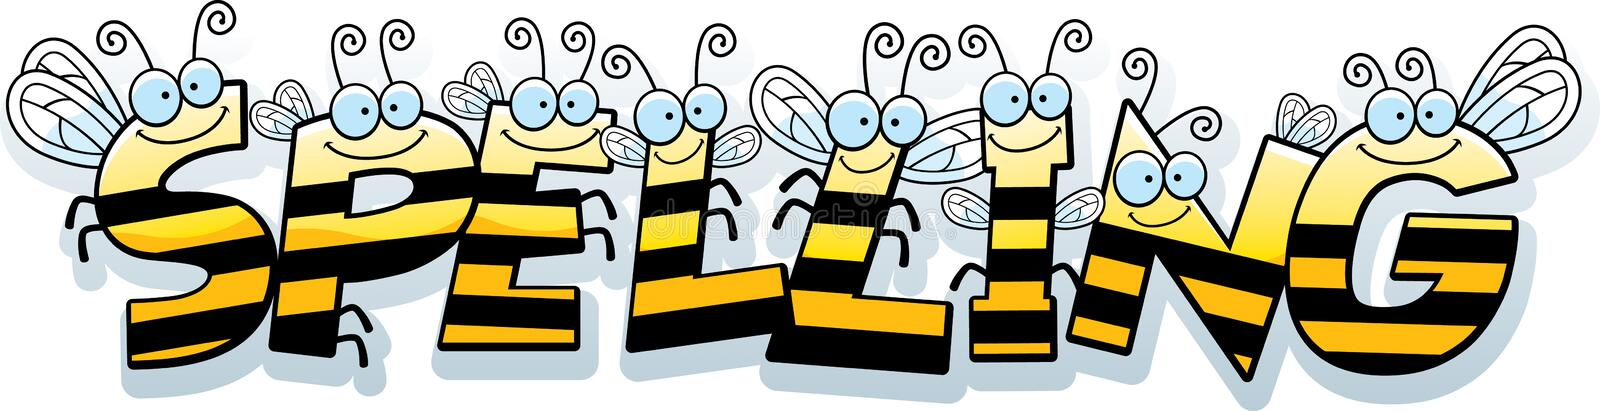 Cartoon Spelling Text. A cartoon illustration of the text Spelling with a bee theme vector illustration